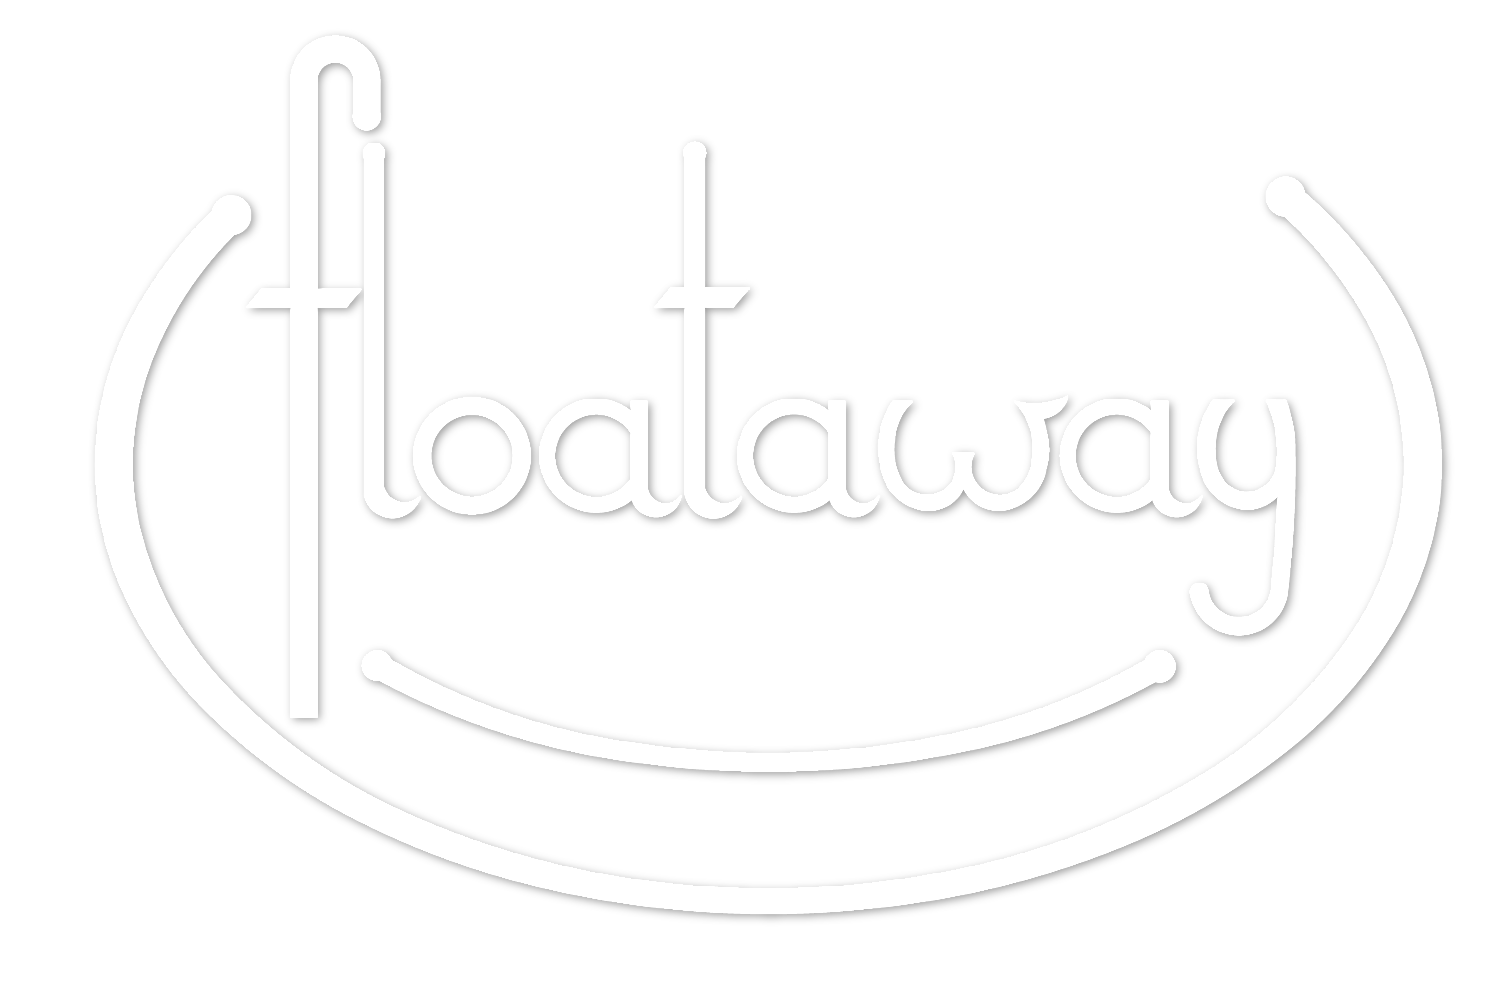 Floataway Air Tank Schematic Symbol Products Pods Tanks Floataround Rooms Cabin Open Pools Technical Packs Float Rescue Board Testimonials Contact Uk